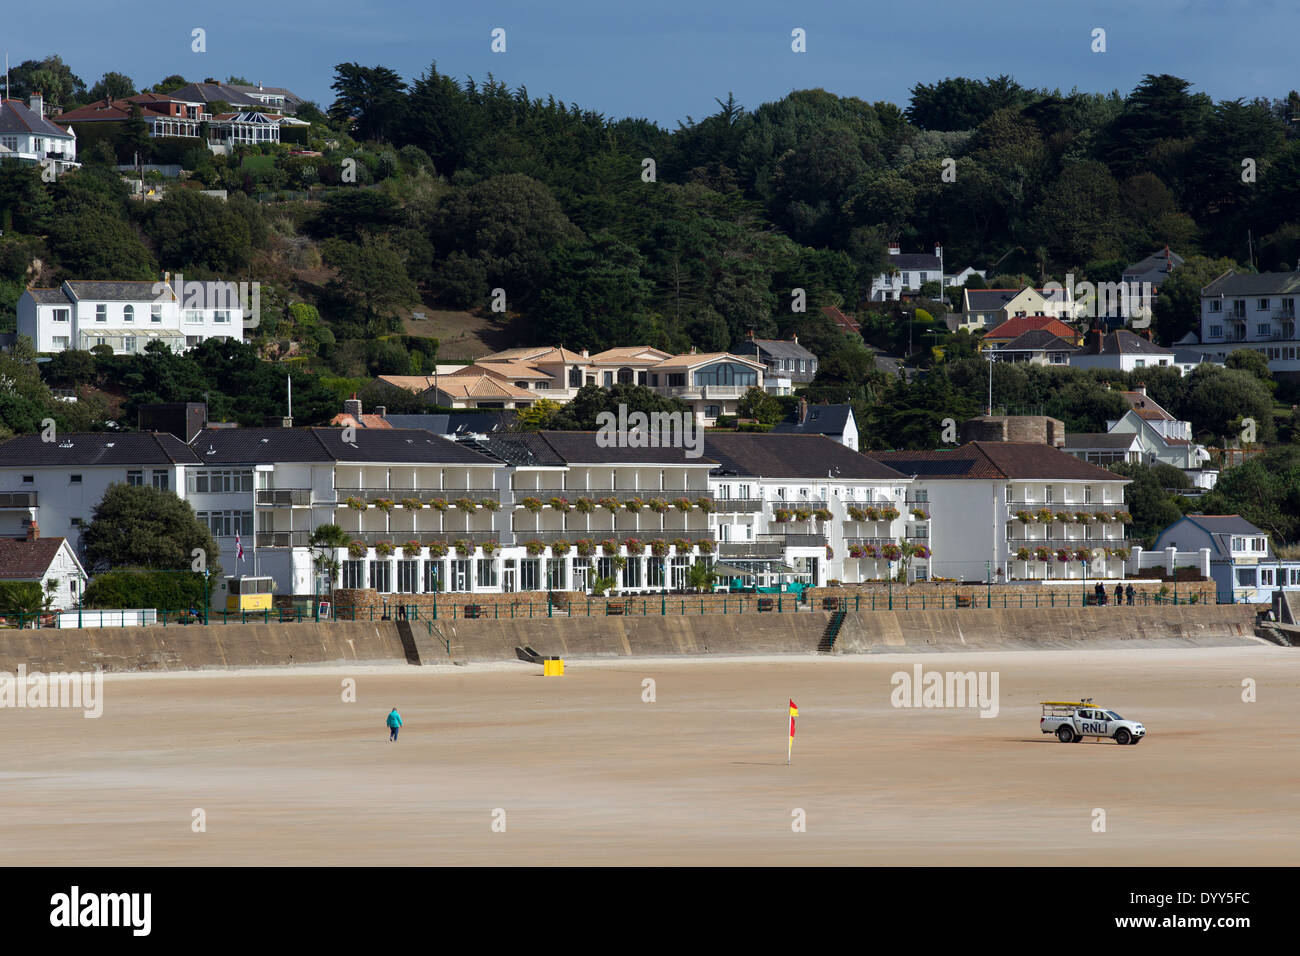 St Brelade's Bay & Beach L'Horizon Hotel & Spa Photo Stock